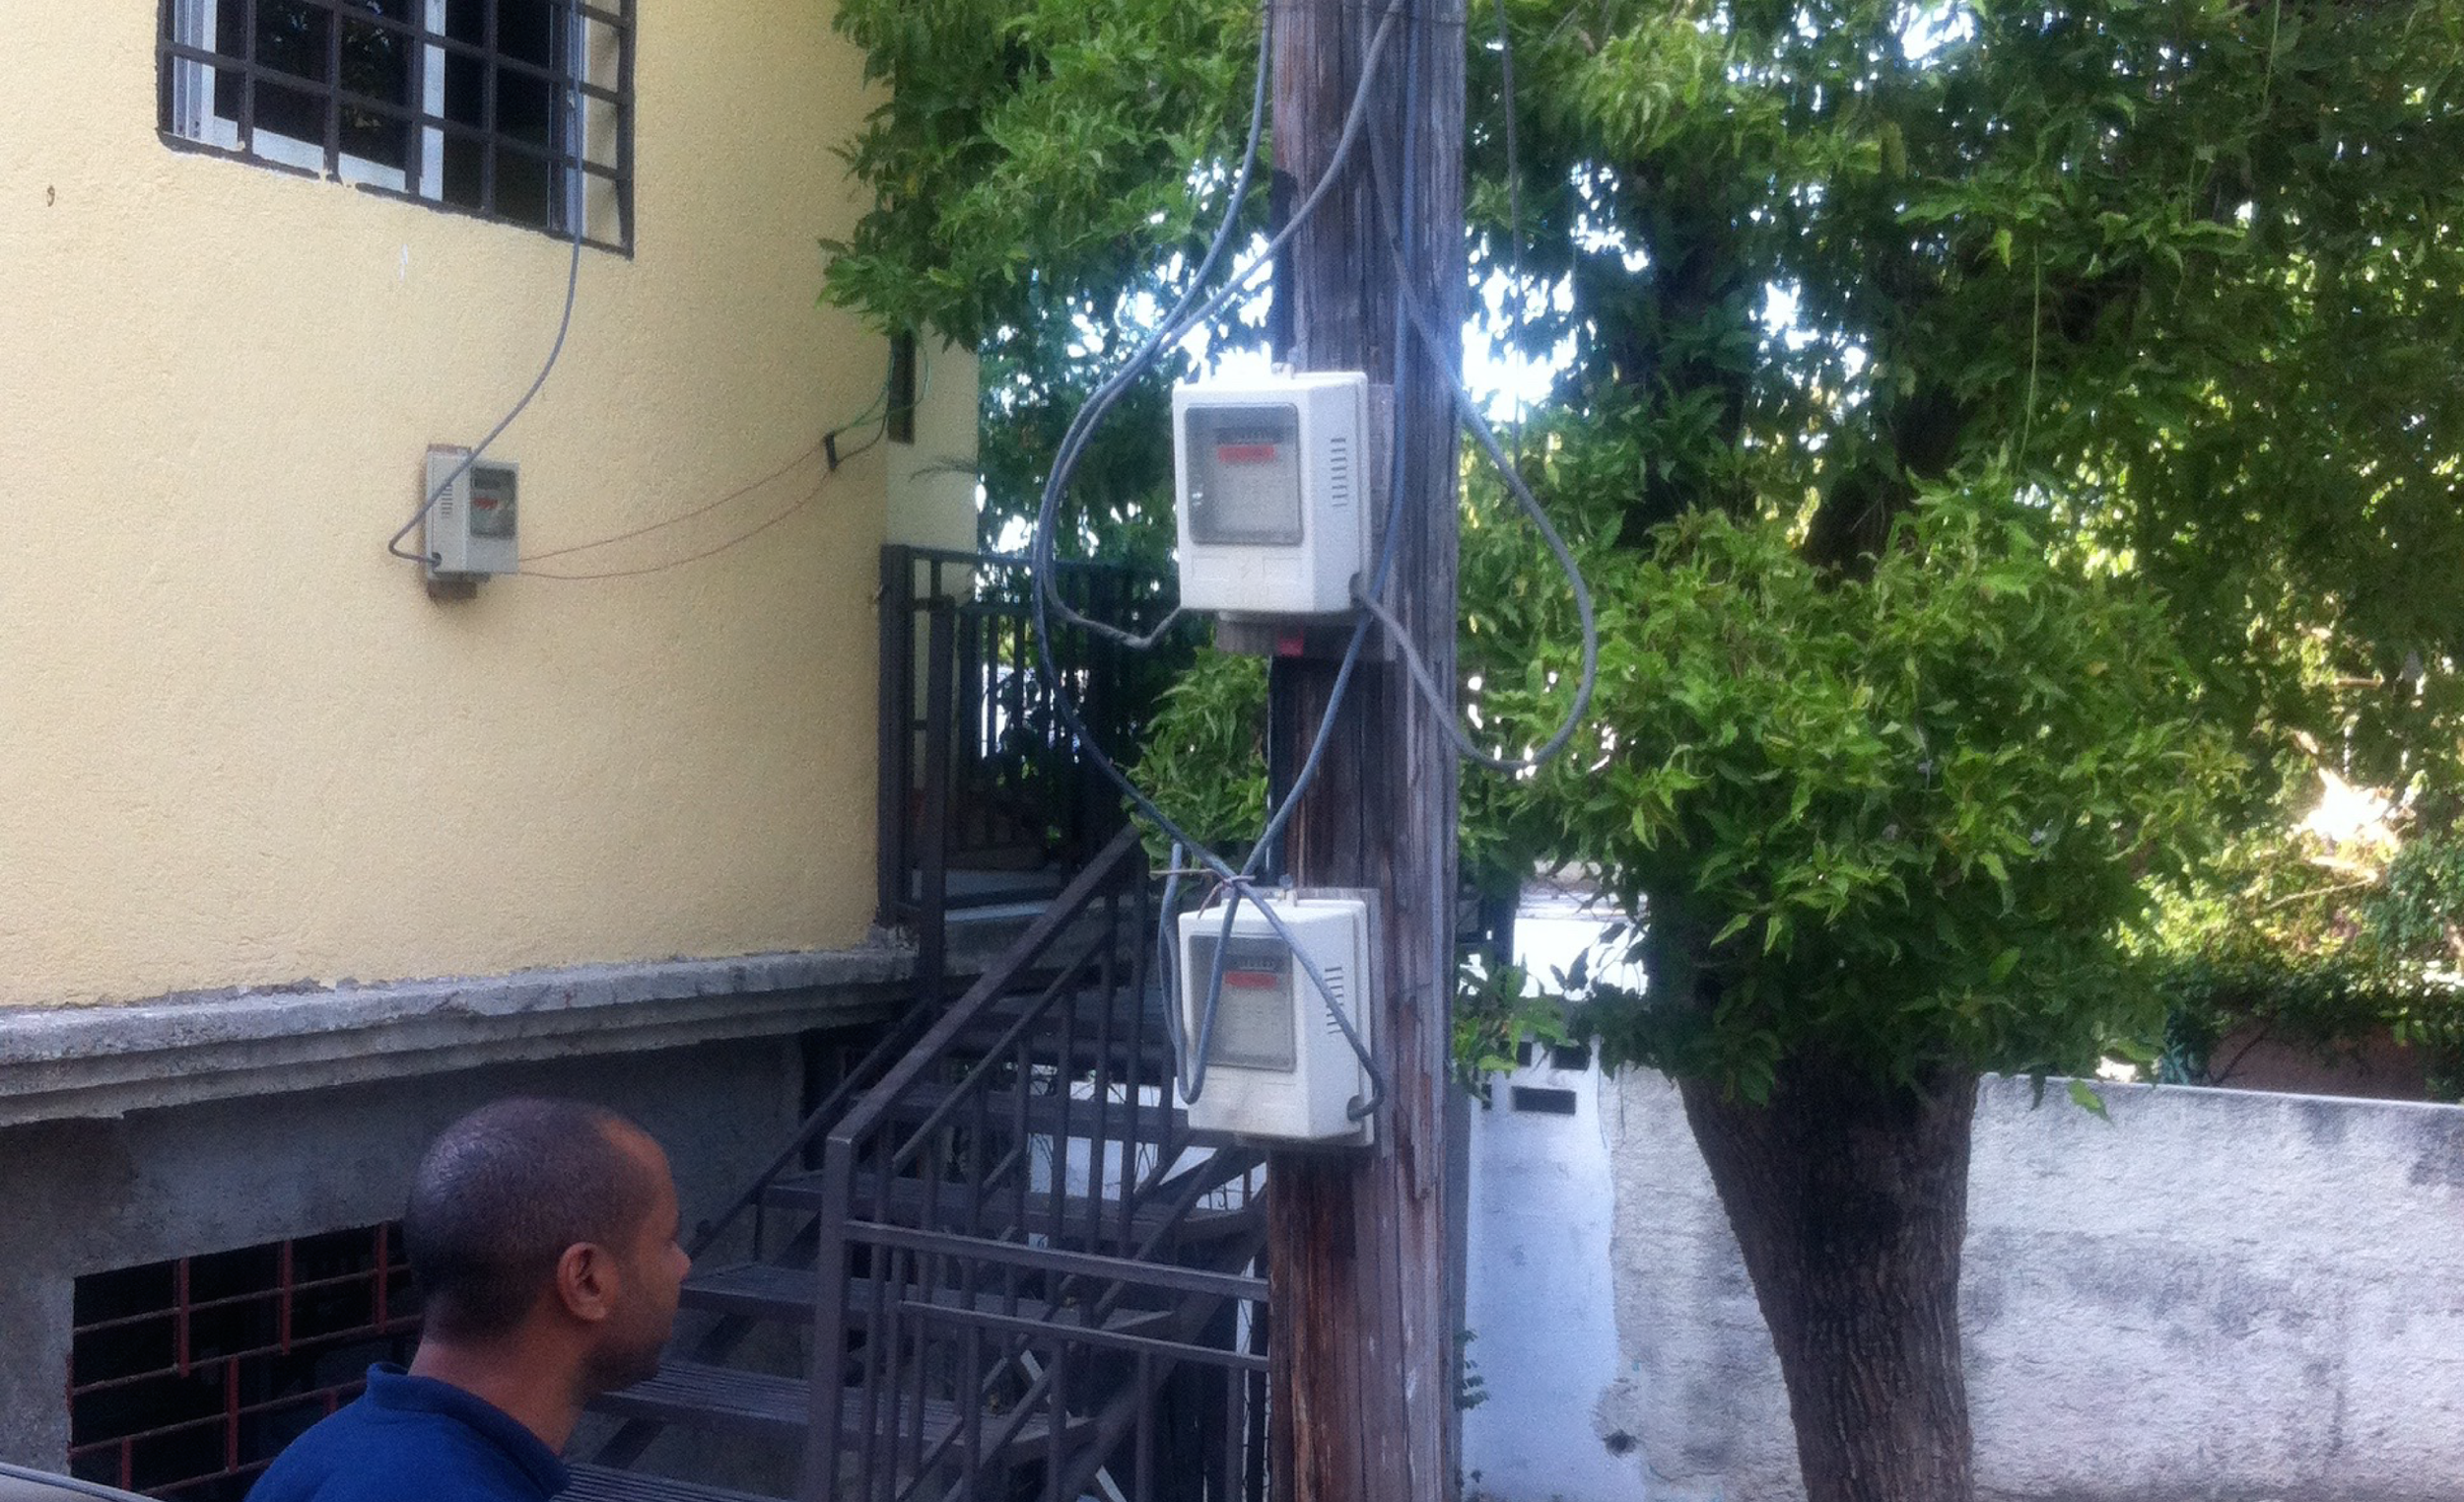 Observing meter connection phenomena in Port-au-Prince